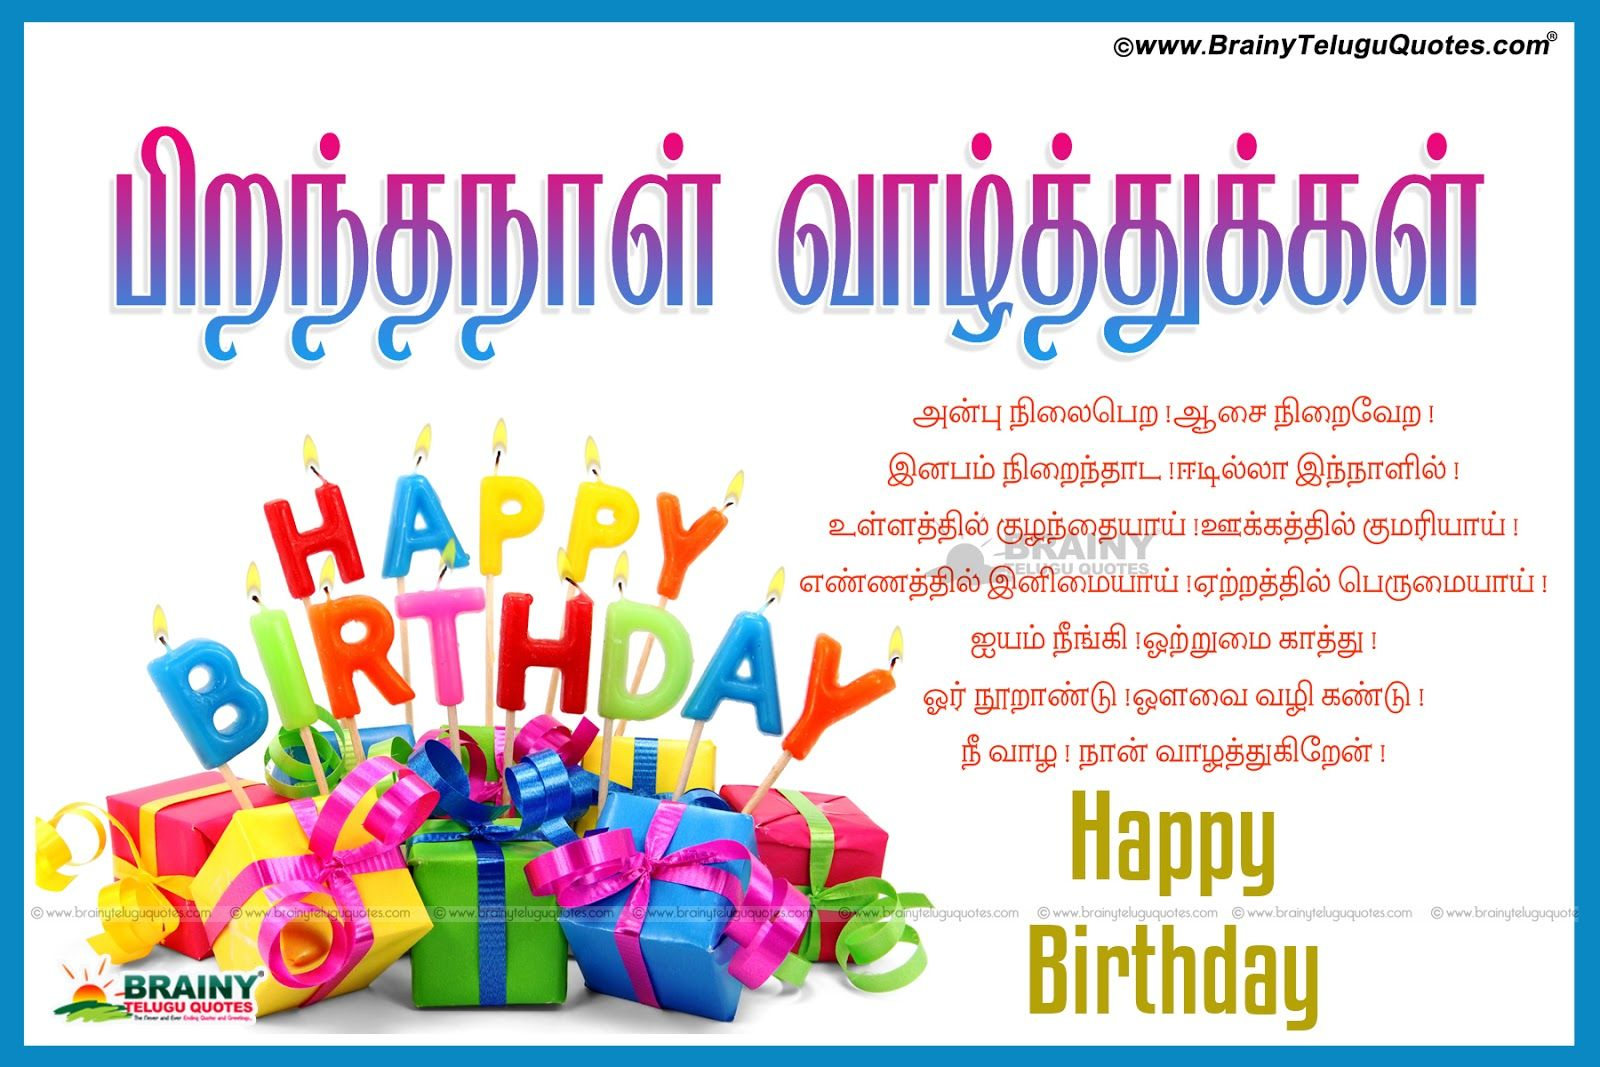 2018 happy birthday images in tamil quotes on Happy